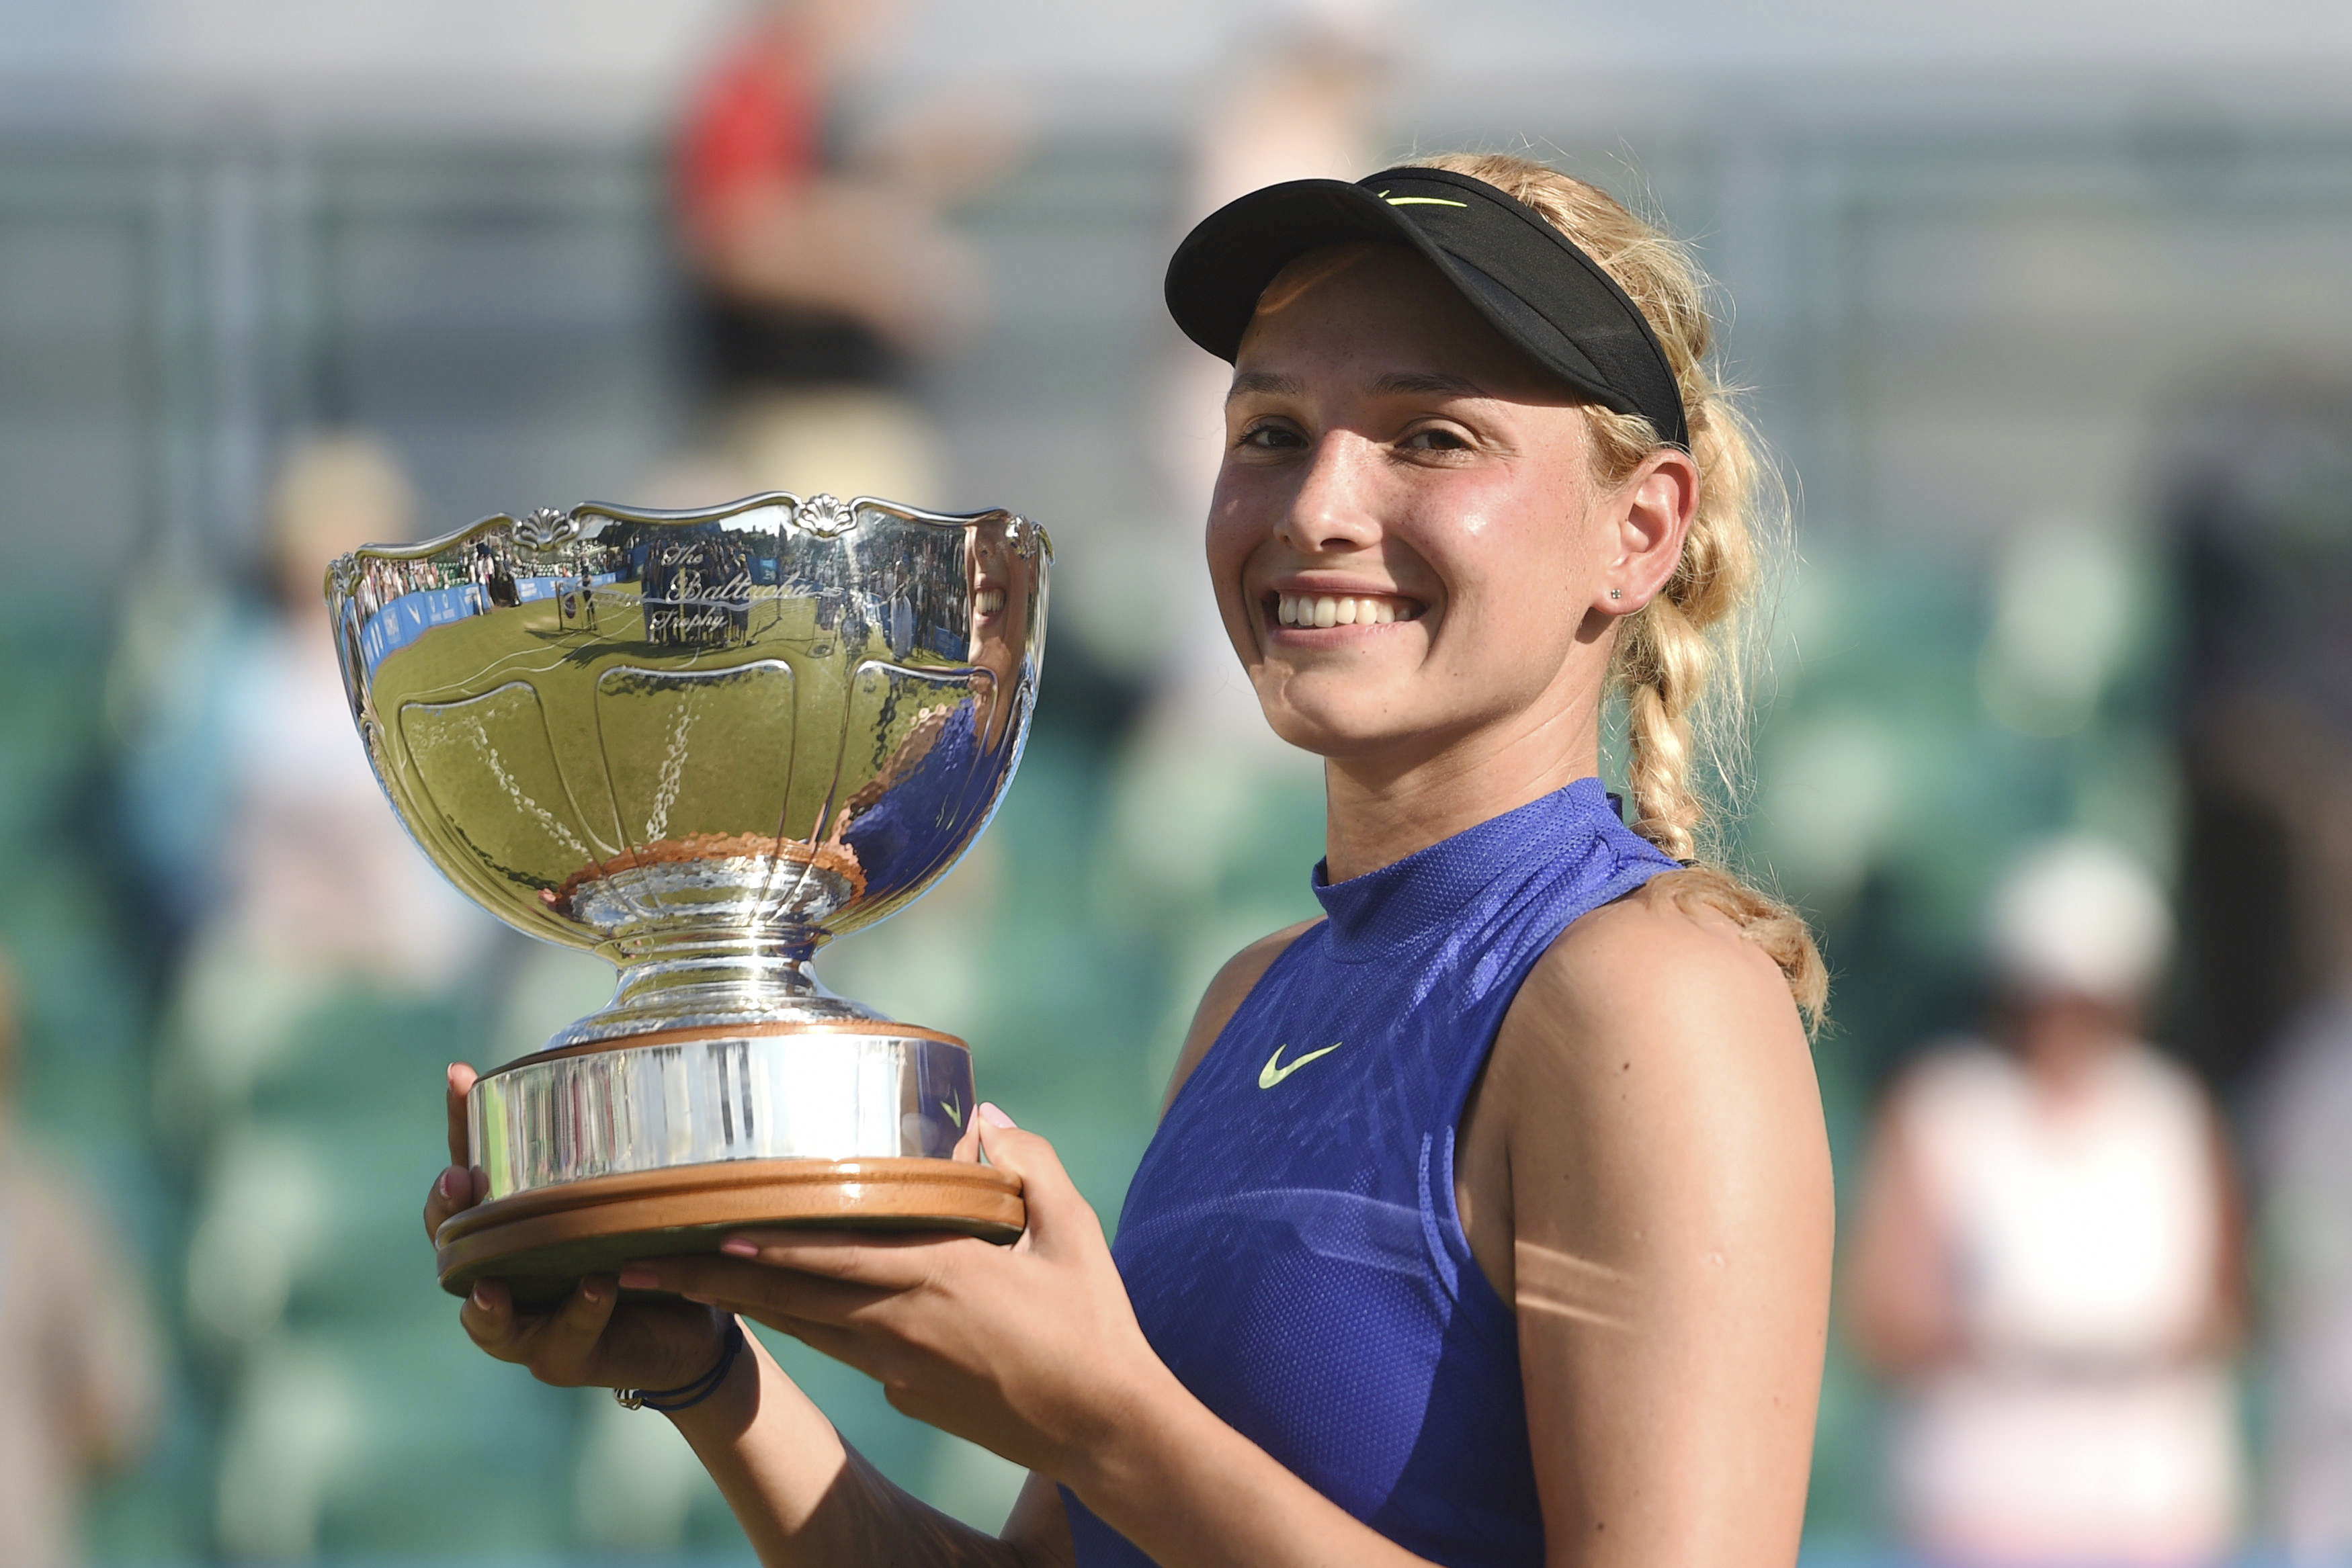 amazing donna vekic smiling face with cup hd mobile download background free images